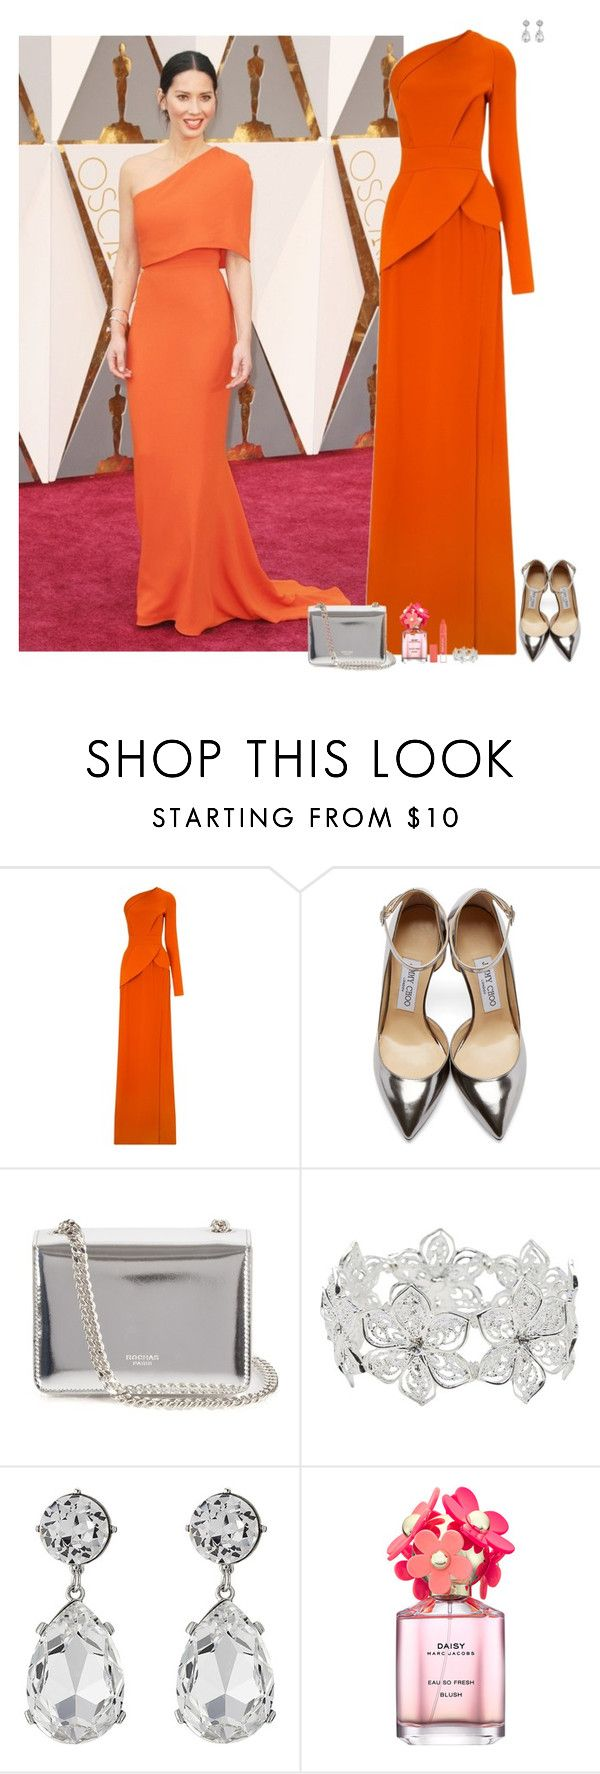 """""""Set 1528"""" by lapshi4ka ❤ liked on Polyvore featuring Antonio Berardi, Jimmy Choo, Rochas, M&Co, Kenneth Jay Lane and Marc Jacobs"""